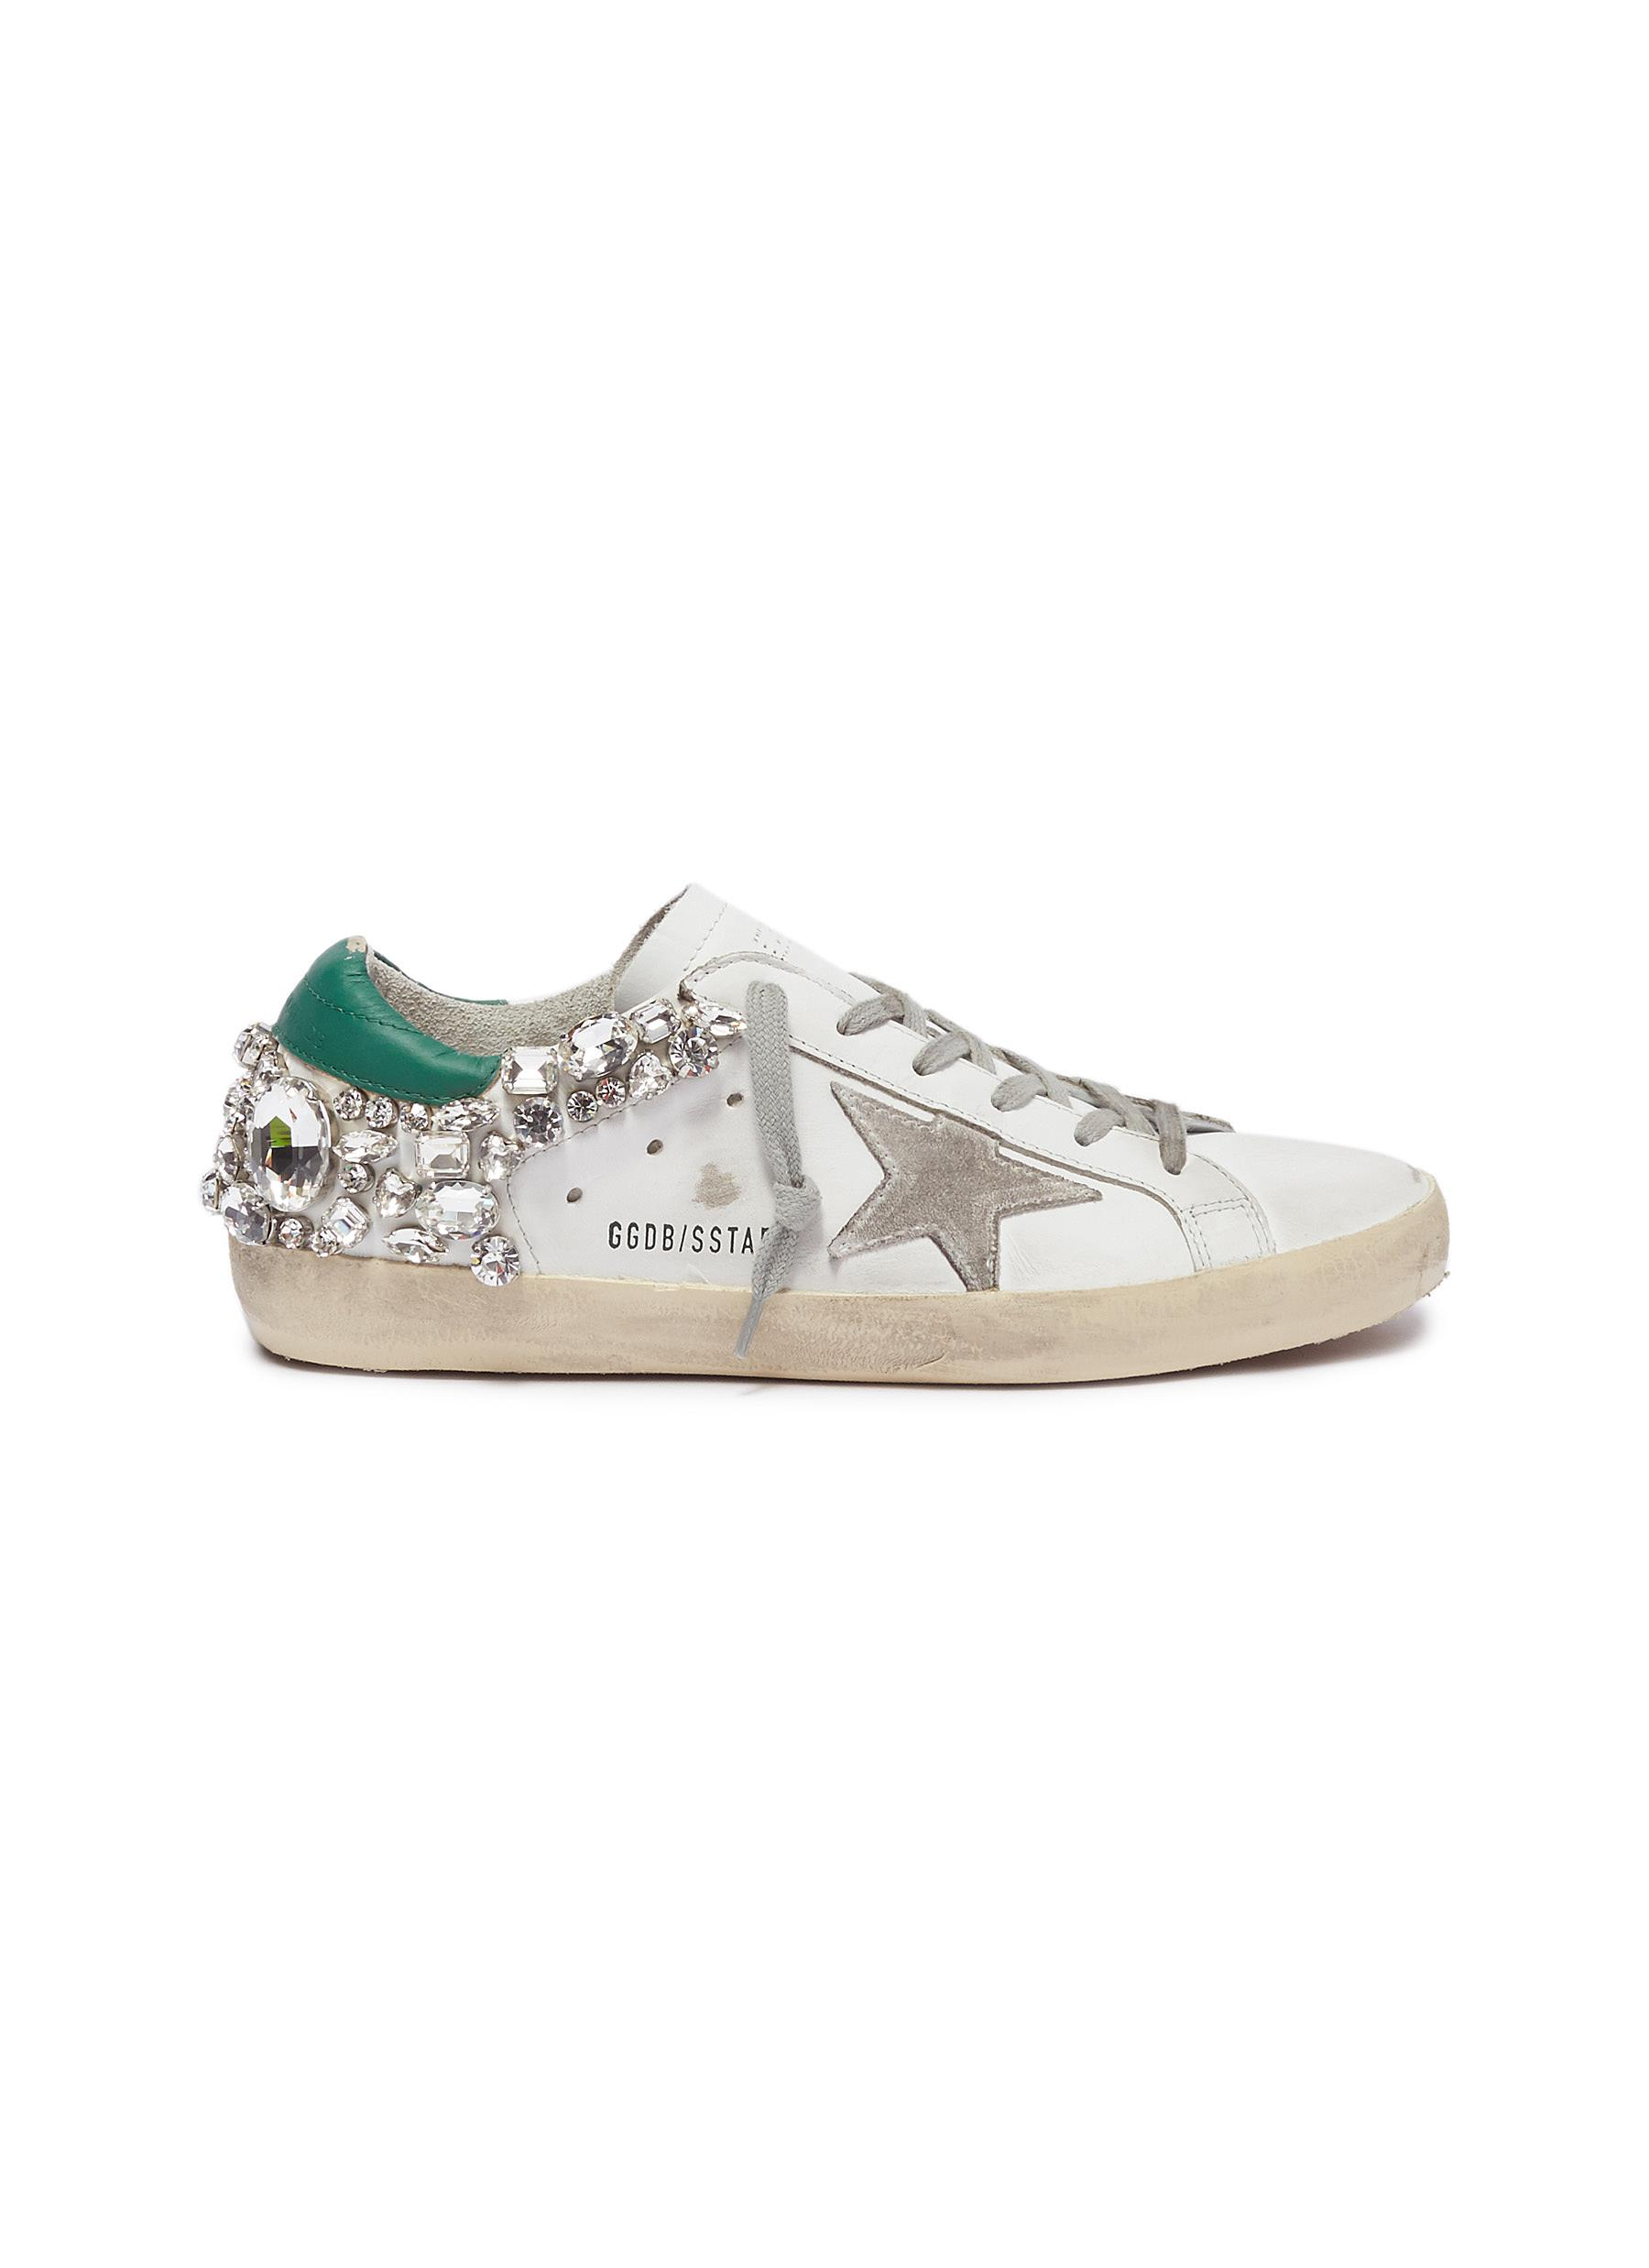 Superstar strass leather sneakers by Golden Goose